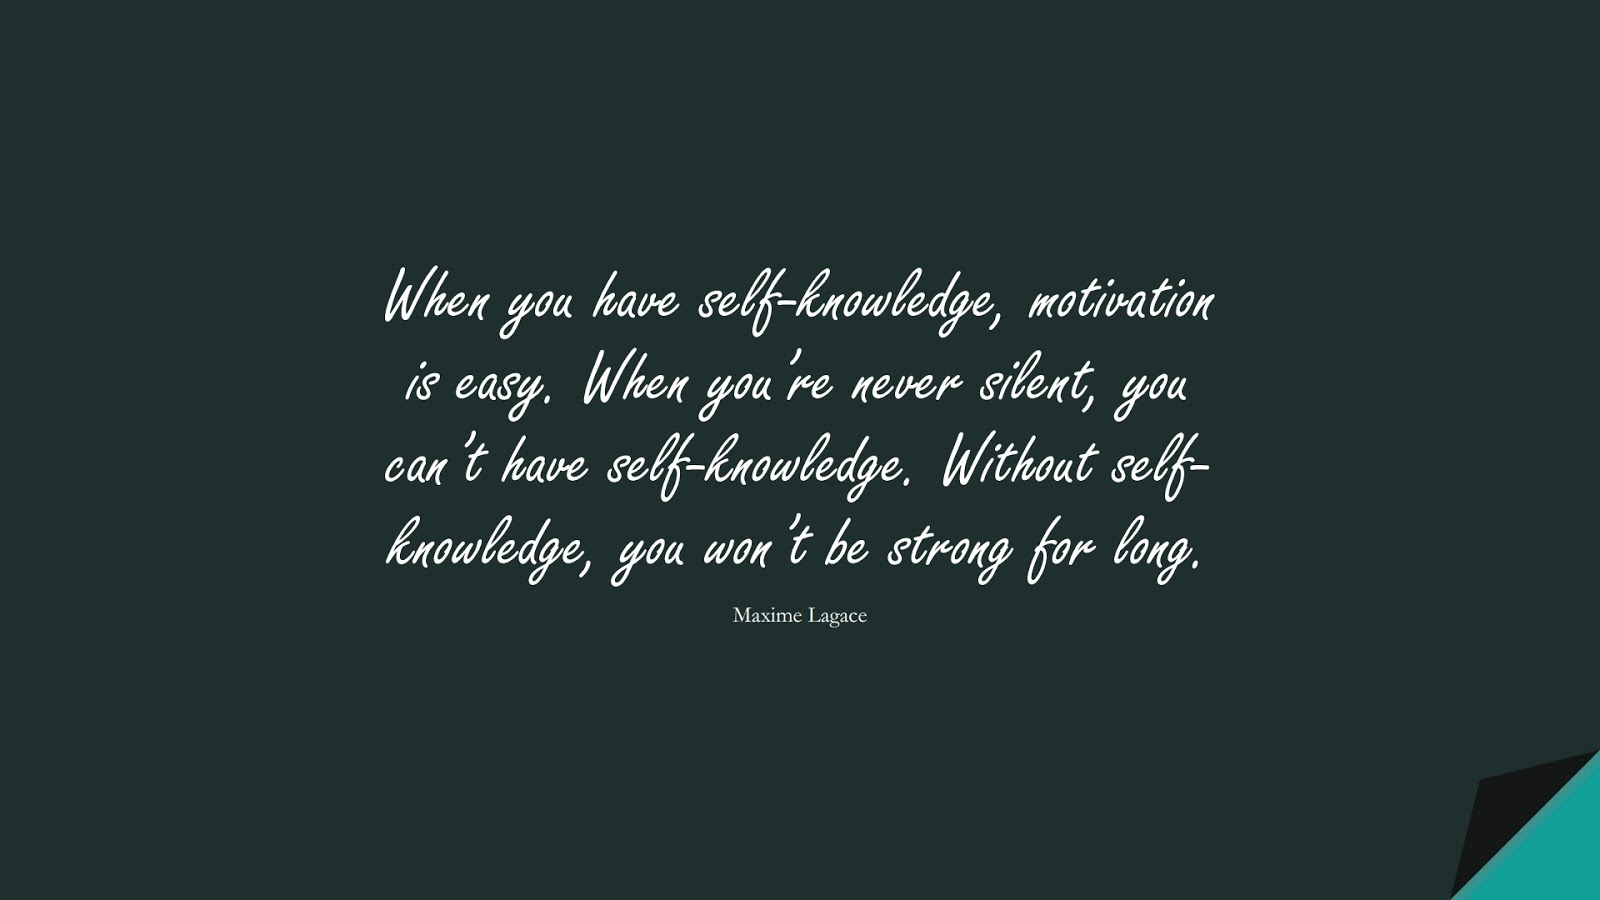 When you have self-knowledge, motivation is easy. When you're never silent, you can't have self-knowledge. Without self-knowledge, you won't be strong for long. (Maxime Lagace);  #BeingStrongQuotes